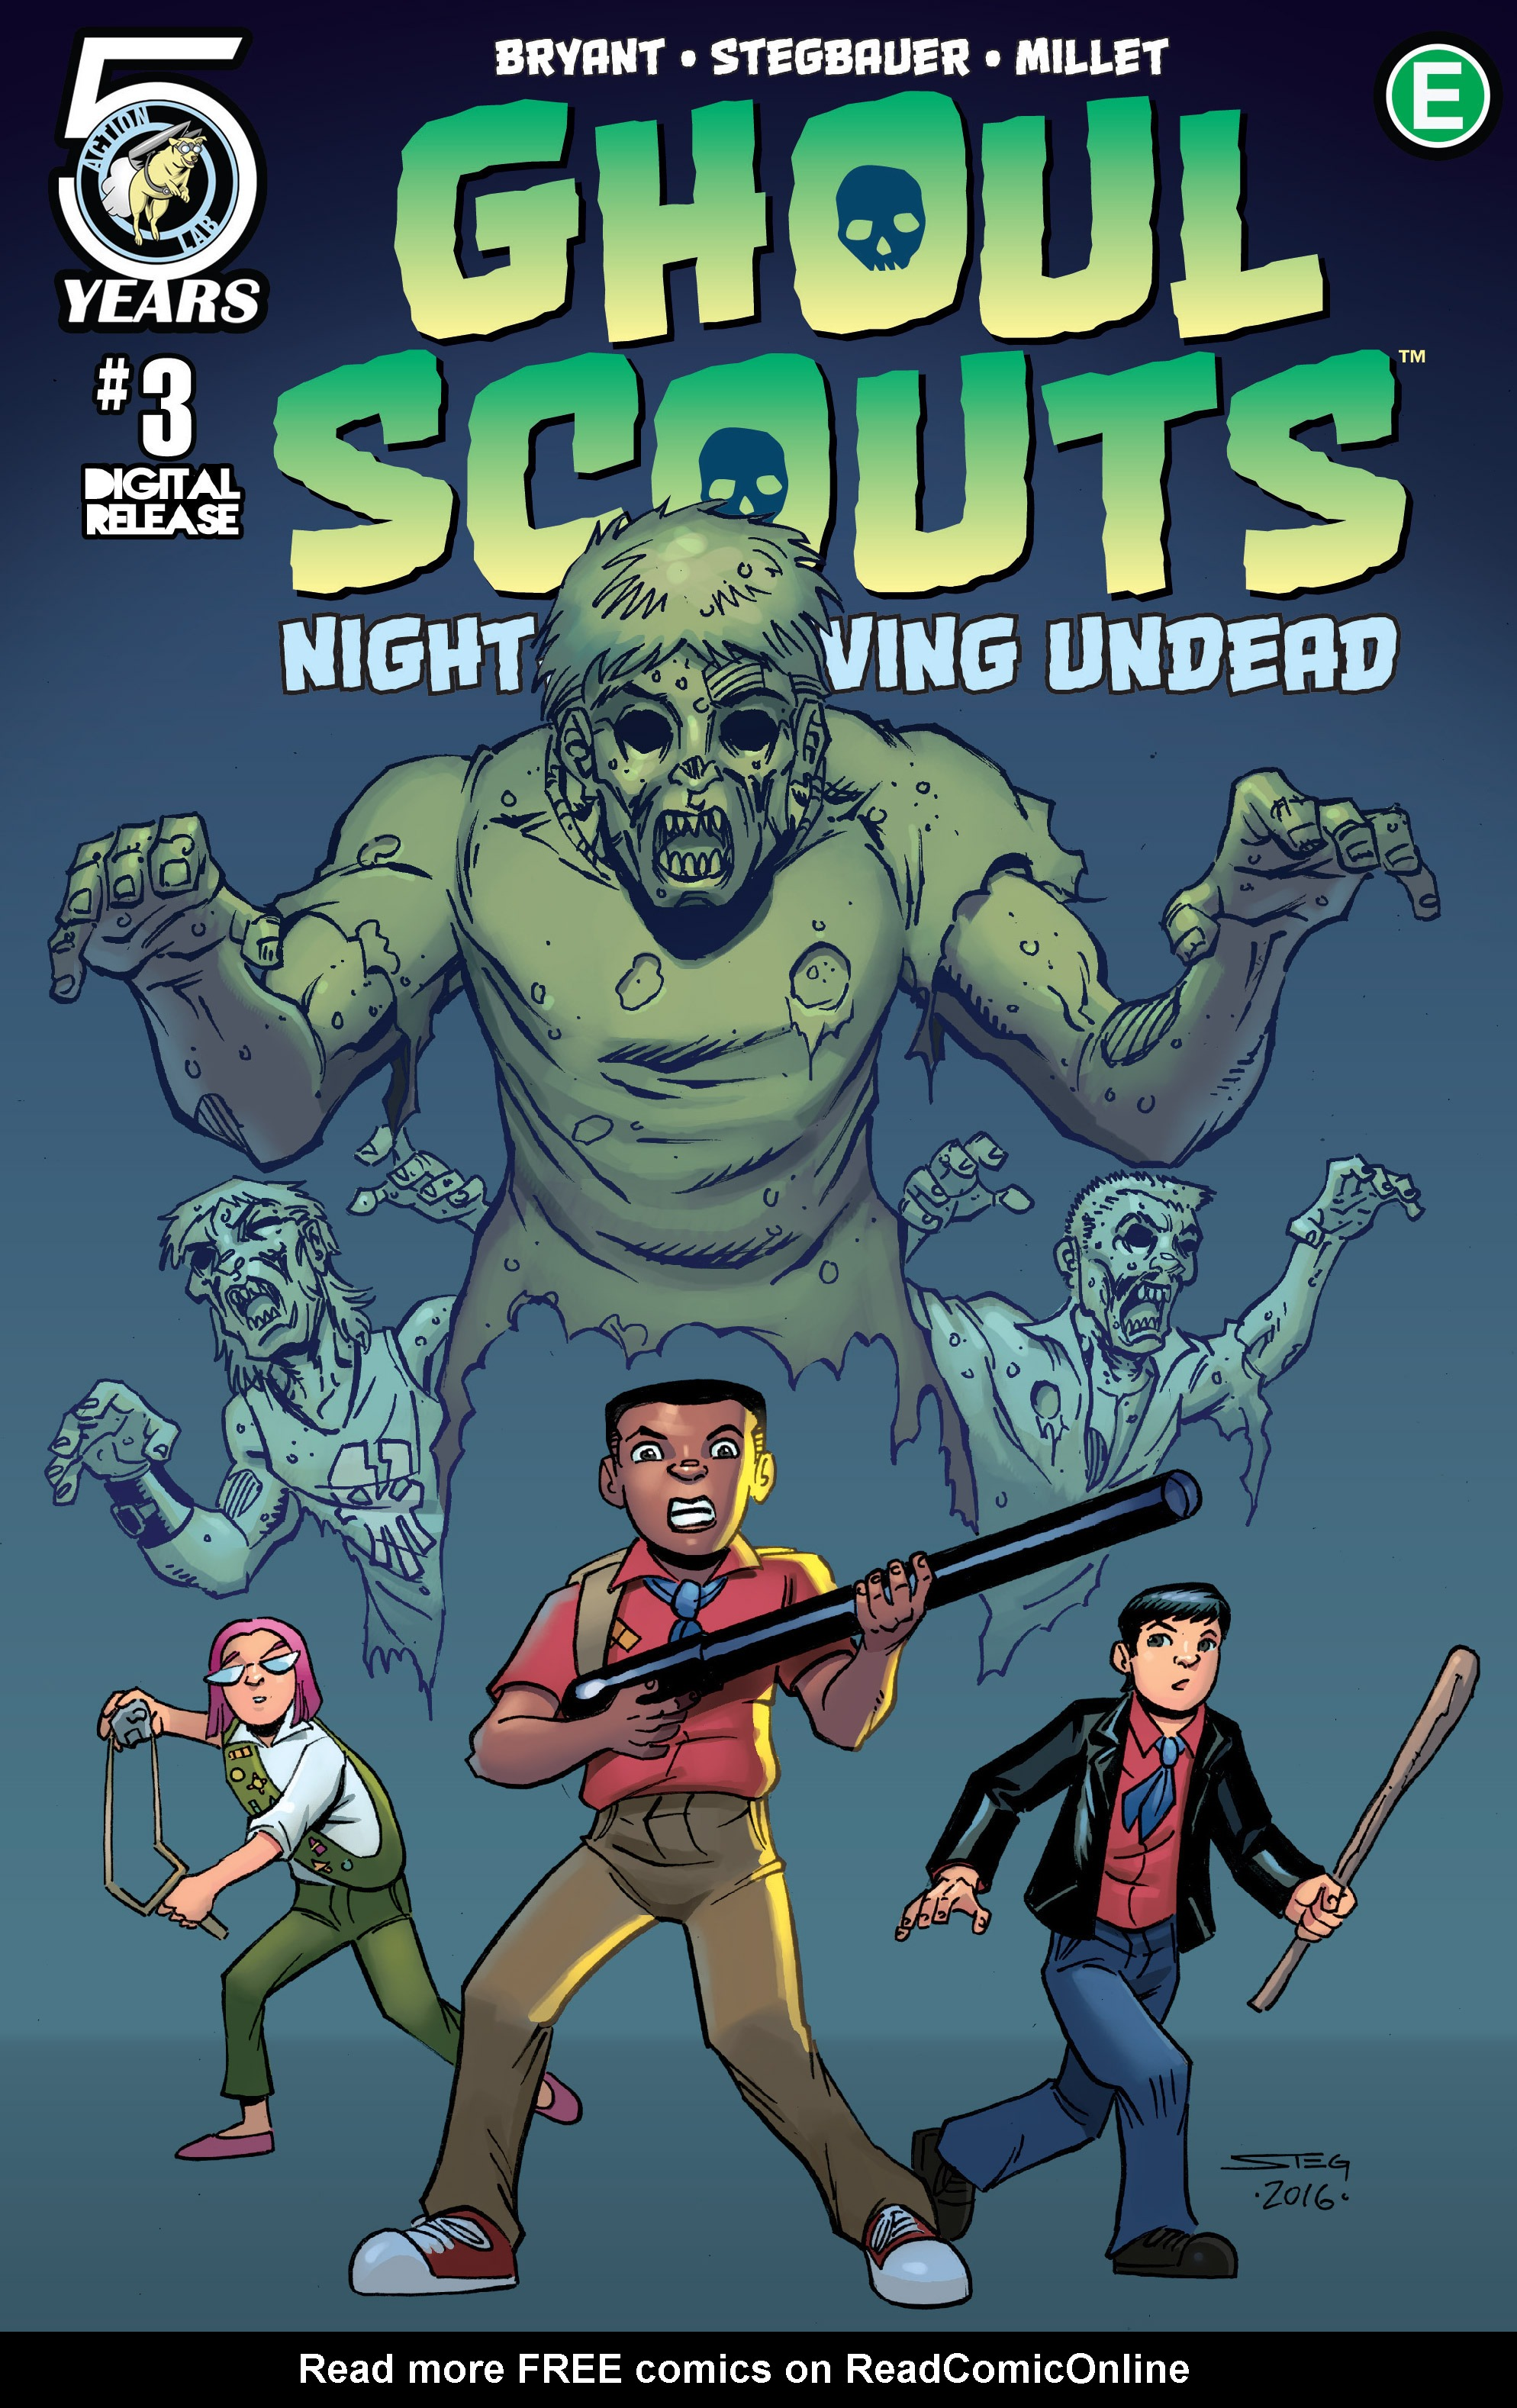 Ghoul Scouts: Night of the Unliving Undead 3 Page 1